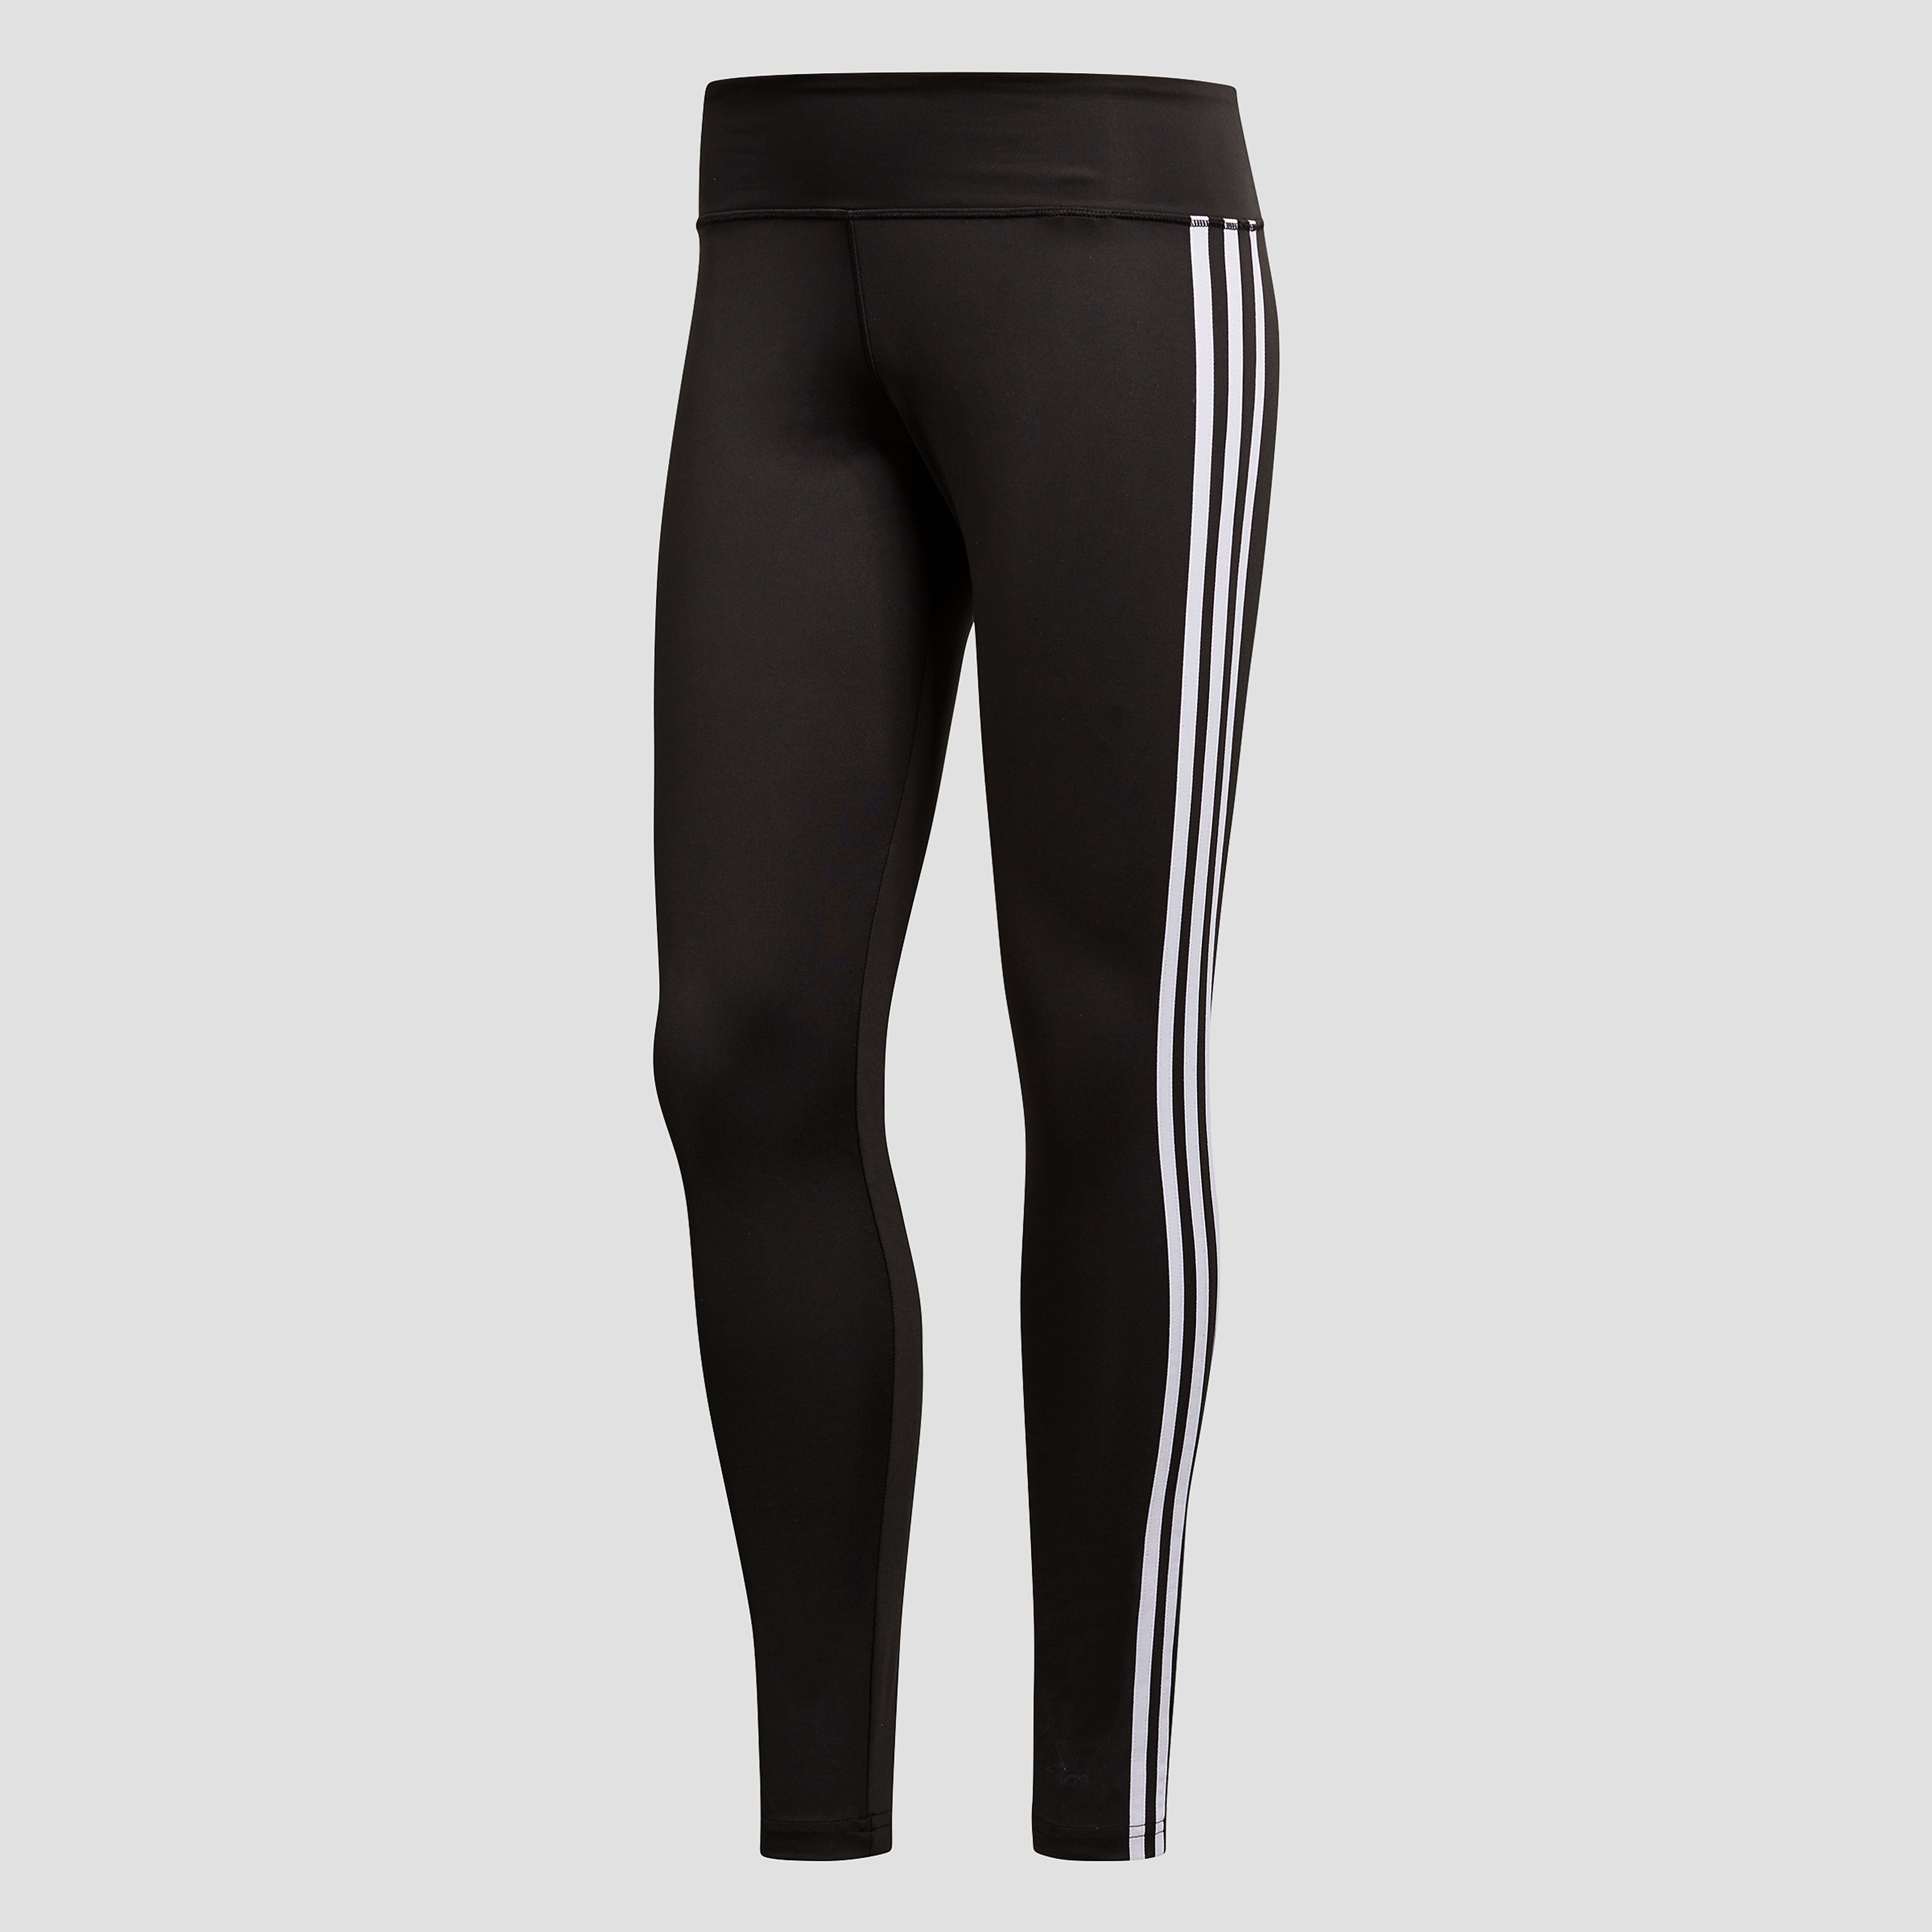 ADIDAS DESIGNED 2 MOVE 3-STRIPES TIGHT ZWART/WIT DAMES